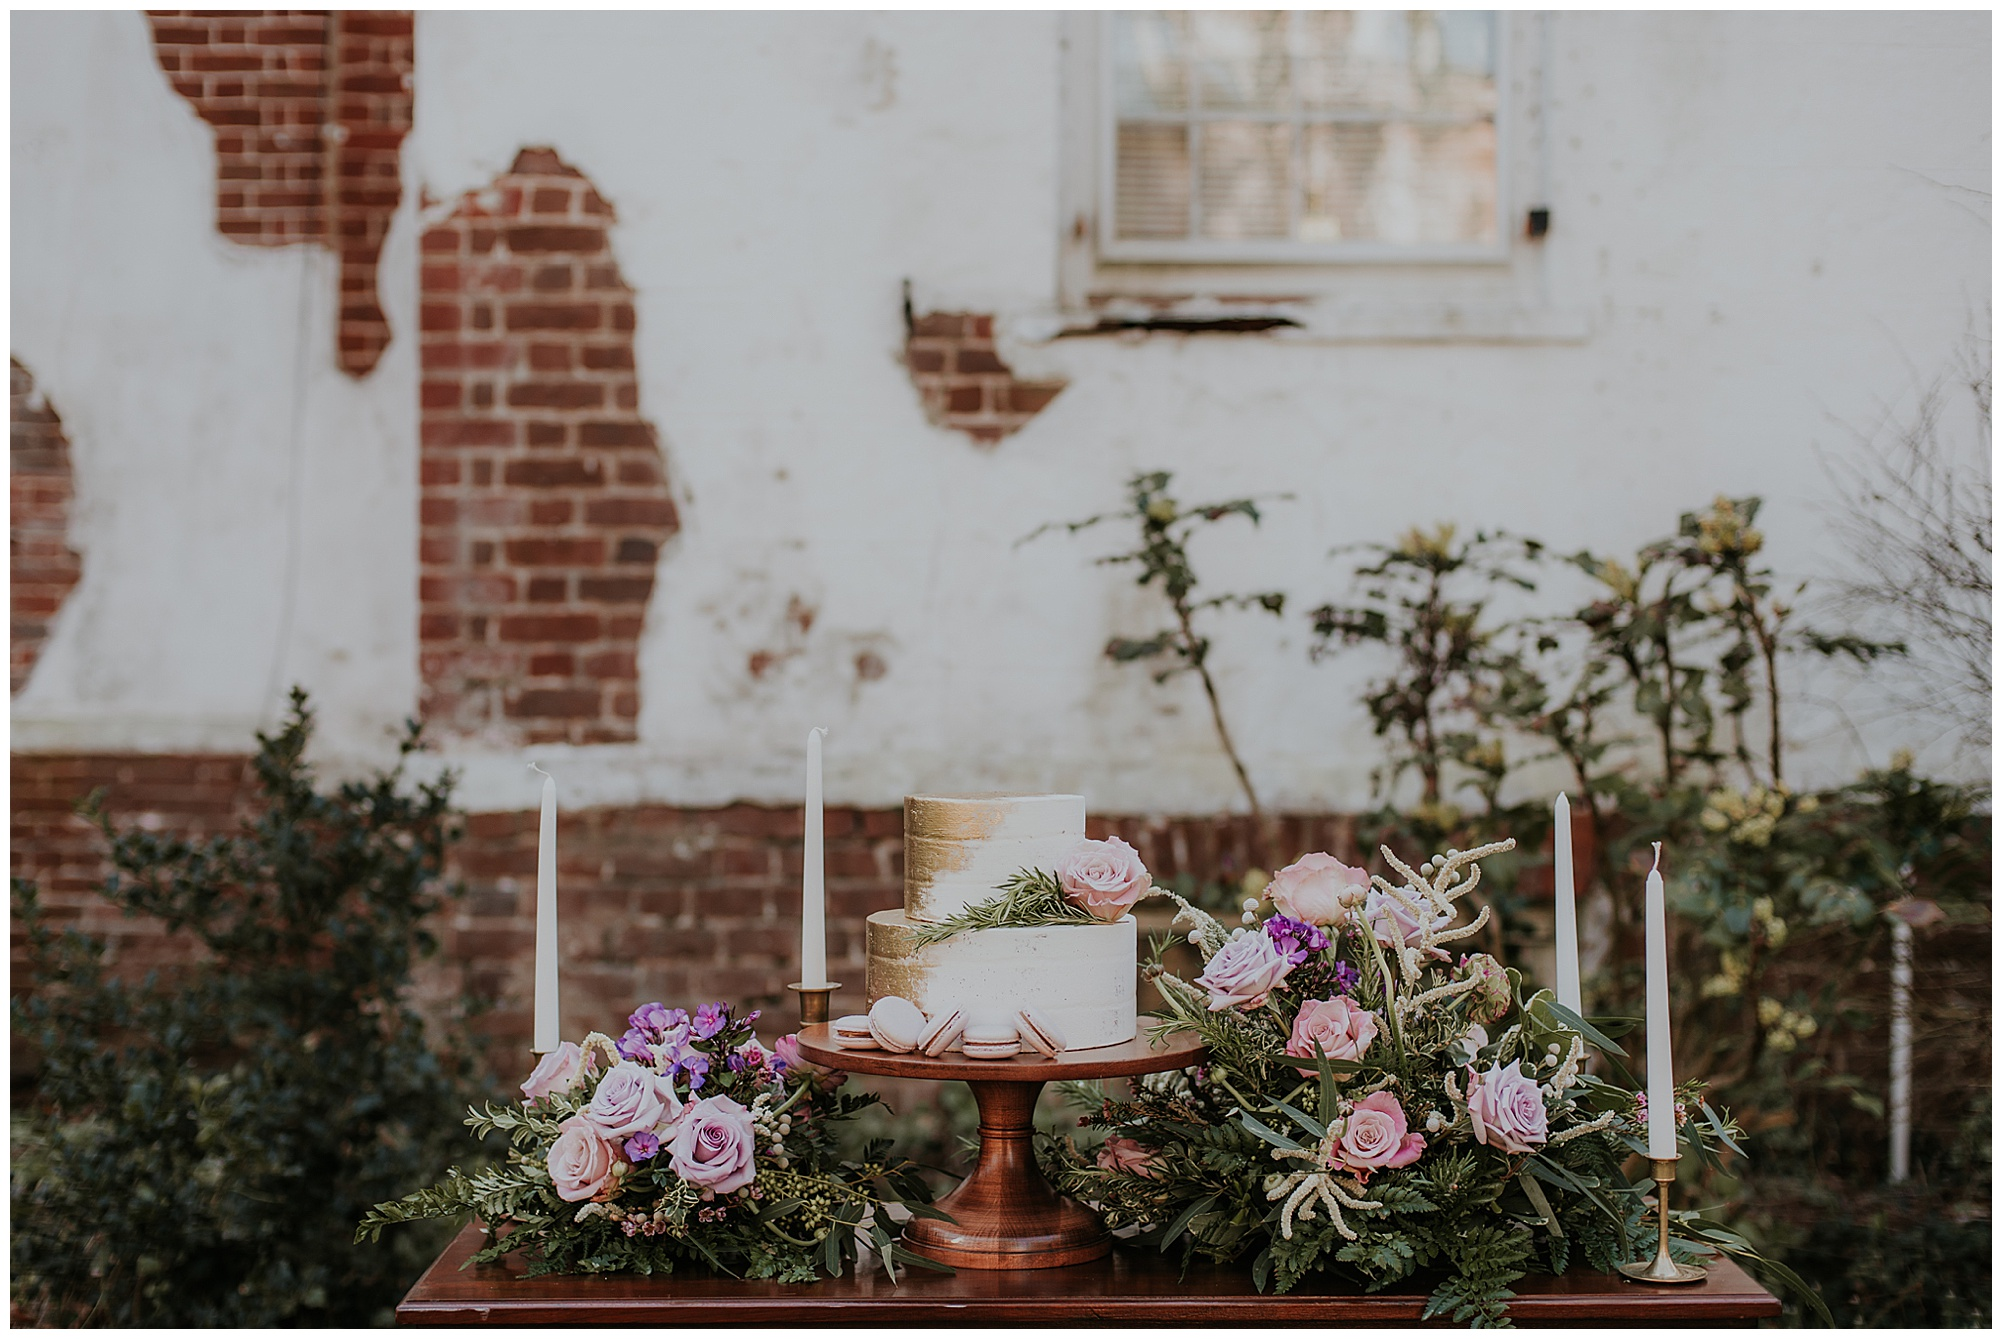 boho glam style inspo at chanceford hall wedding styled photoshoot. featured on my eastern shore wedding. wedding cake with roses, rosemary, candles display outdoors at historic maryland venue.